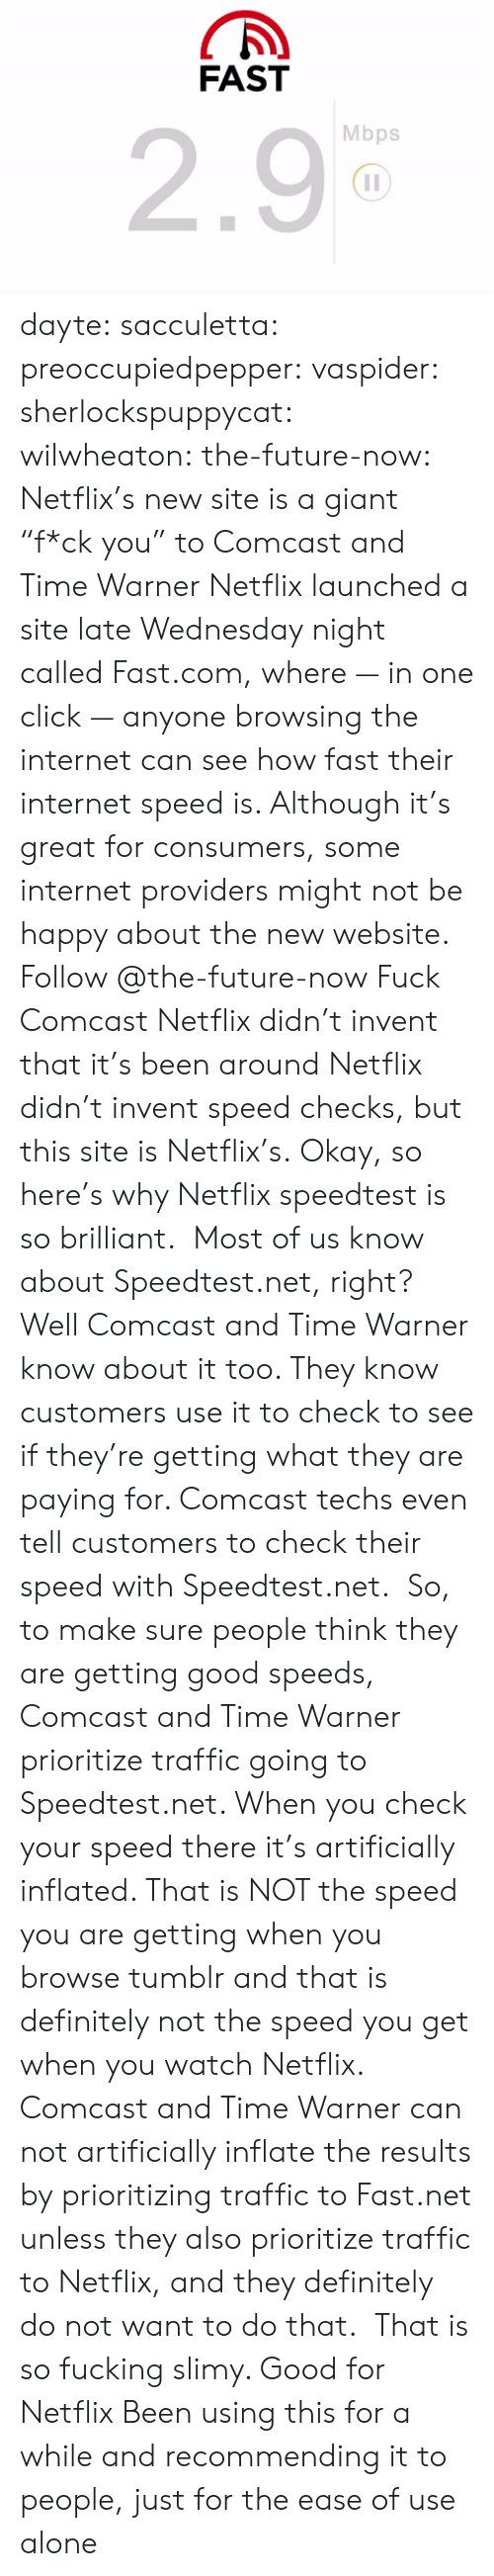 "Being Alone, Click, and Definitely: FAST  2.9  Mbps dayte: sacculetta:  preoccupiedpepper:  vaspider:  sherlockspuppycat:  wilwheaton:  the-future-now:  Netflix's new site is a giant ""f*ck you"" to Comcast and Time Warner Netflix launched a site late Wednesday night called Fast.com, where — in one click — anyone browsing the internet can see how fast their internet speed is. Although it's great for consumers, some internet providers might not be happy about the new website. Follow @the-future-now​  Fuck Comcast  Netflix didn't invent that it's been around  Netflix didn't invent speed checks, but this site is Netflix's.  Okay, so here's why Netflix speedtest is so brilliant.  Most of us know about Speedtest.net, right? Well Comcast and Time Warner know about it too. They know customers use it to check to see if they're getting what they are paying for. Comcast techs even tell customers to check their speed with Speedtest.net.  So, to make sure people think they are getting good speeds, Comcast and Time Warner prioritize traffic going to Speedtest.net. When you check your speed there it's artificially inflated. That is NOT the speed you are getting when you browse tumblr and that is definitely not the speed you get when you watch Netflix.  Comcast and Time Warner can not artificially inflate the results by prioritizing traffic to Fast.net unless they also prioritize traffic to Netflix, and they definitely do not want to do that.   That is so fucking slimy. Good for Netflix   Been using this for a while and recommending it to people, just for the ease of use alone"